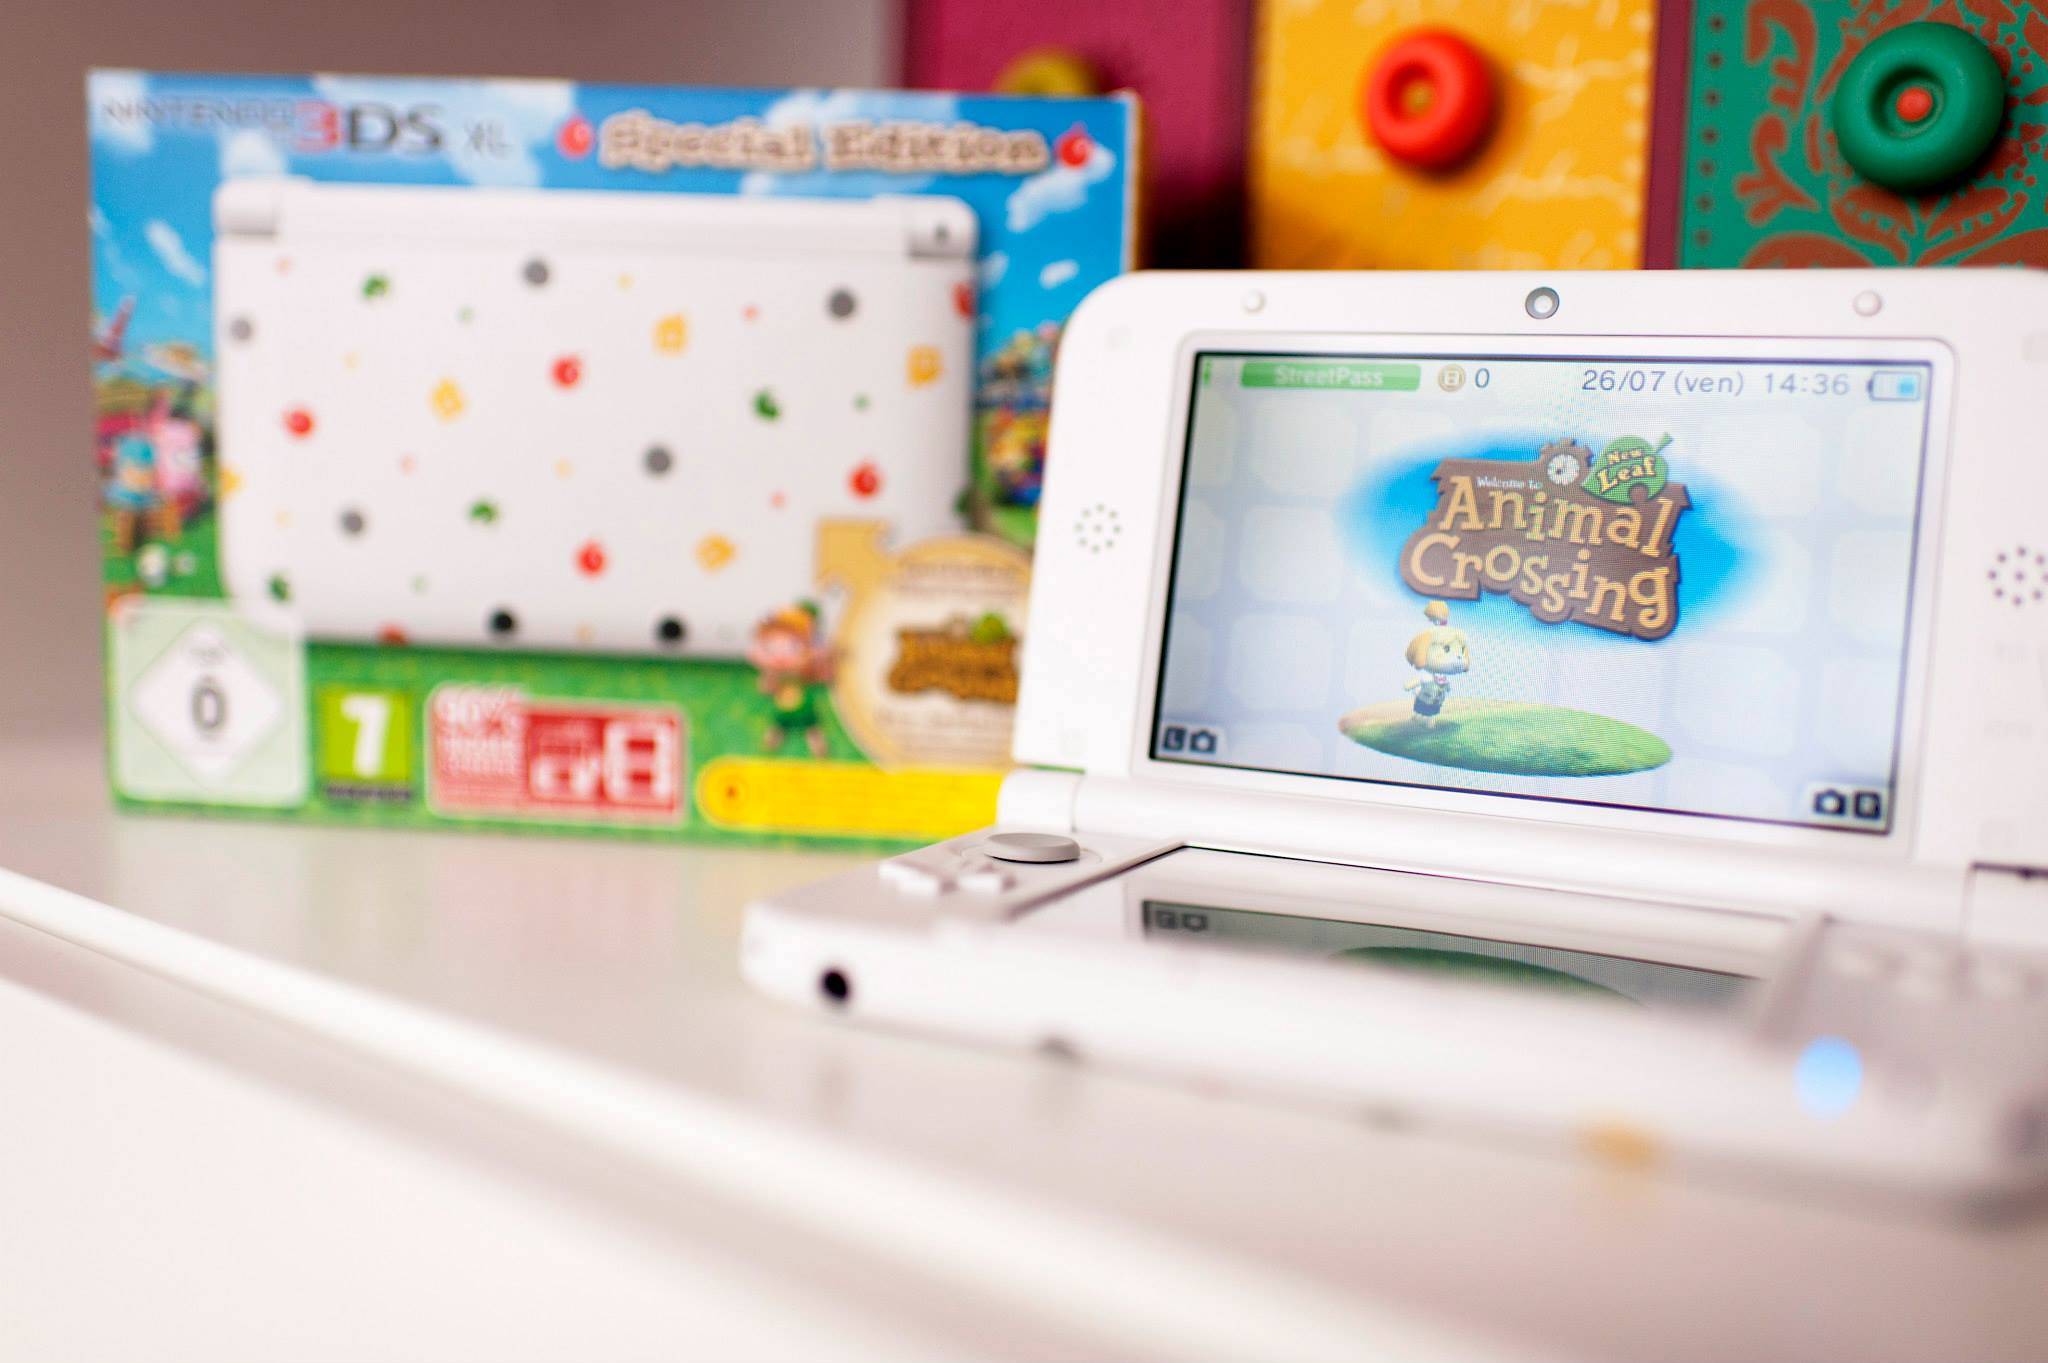 Animal Crossing 3DS XL collector